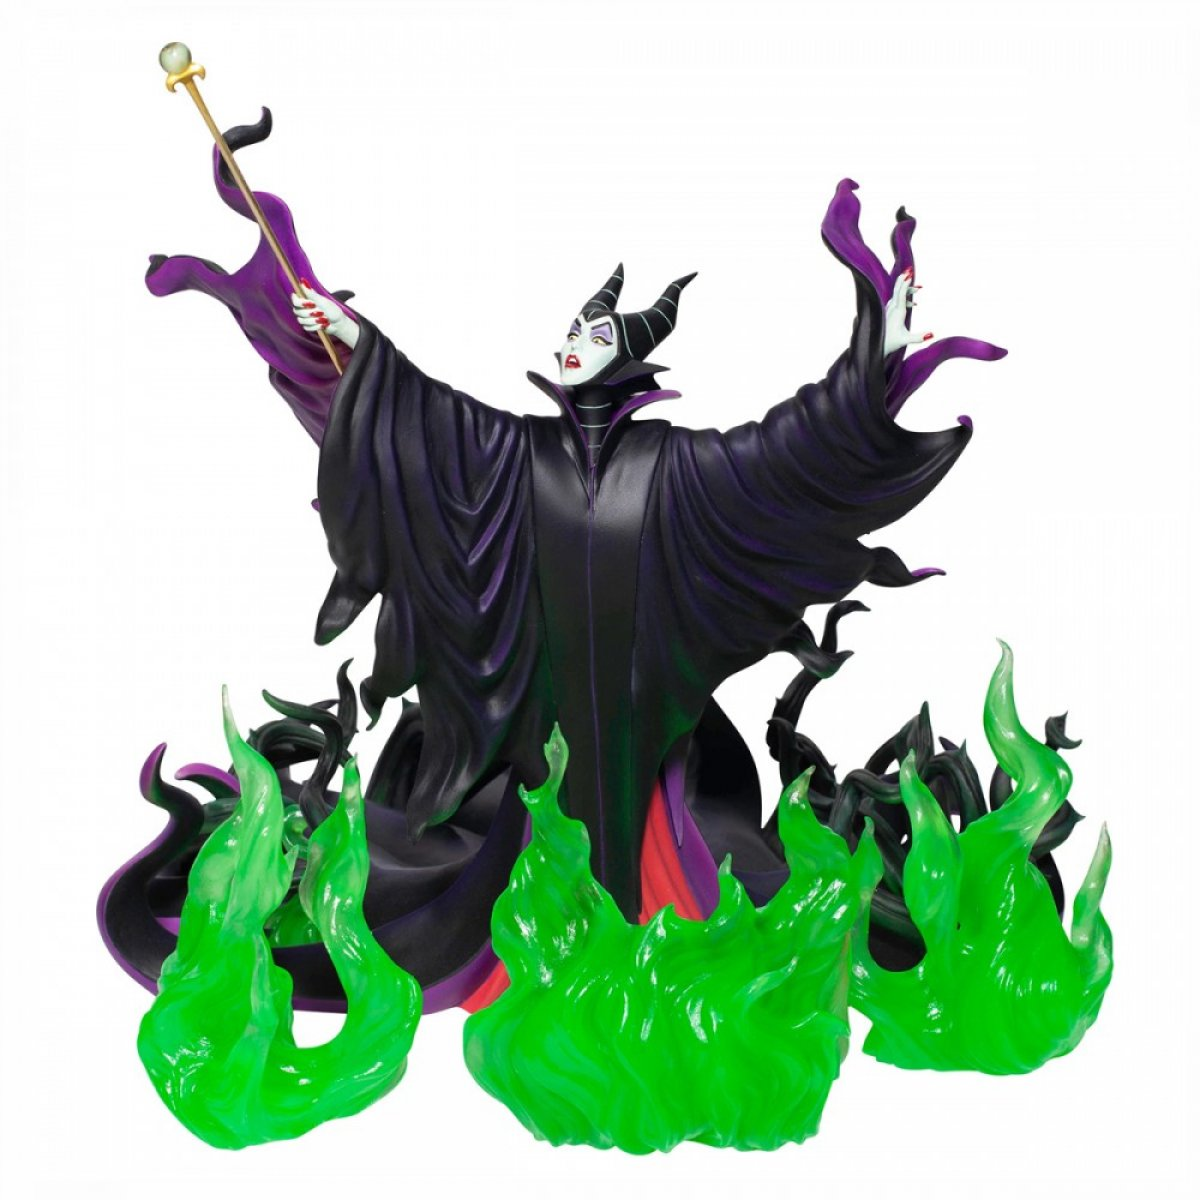 grand-jester-studios-maleficent-statue-toyslife-01